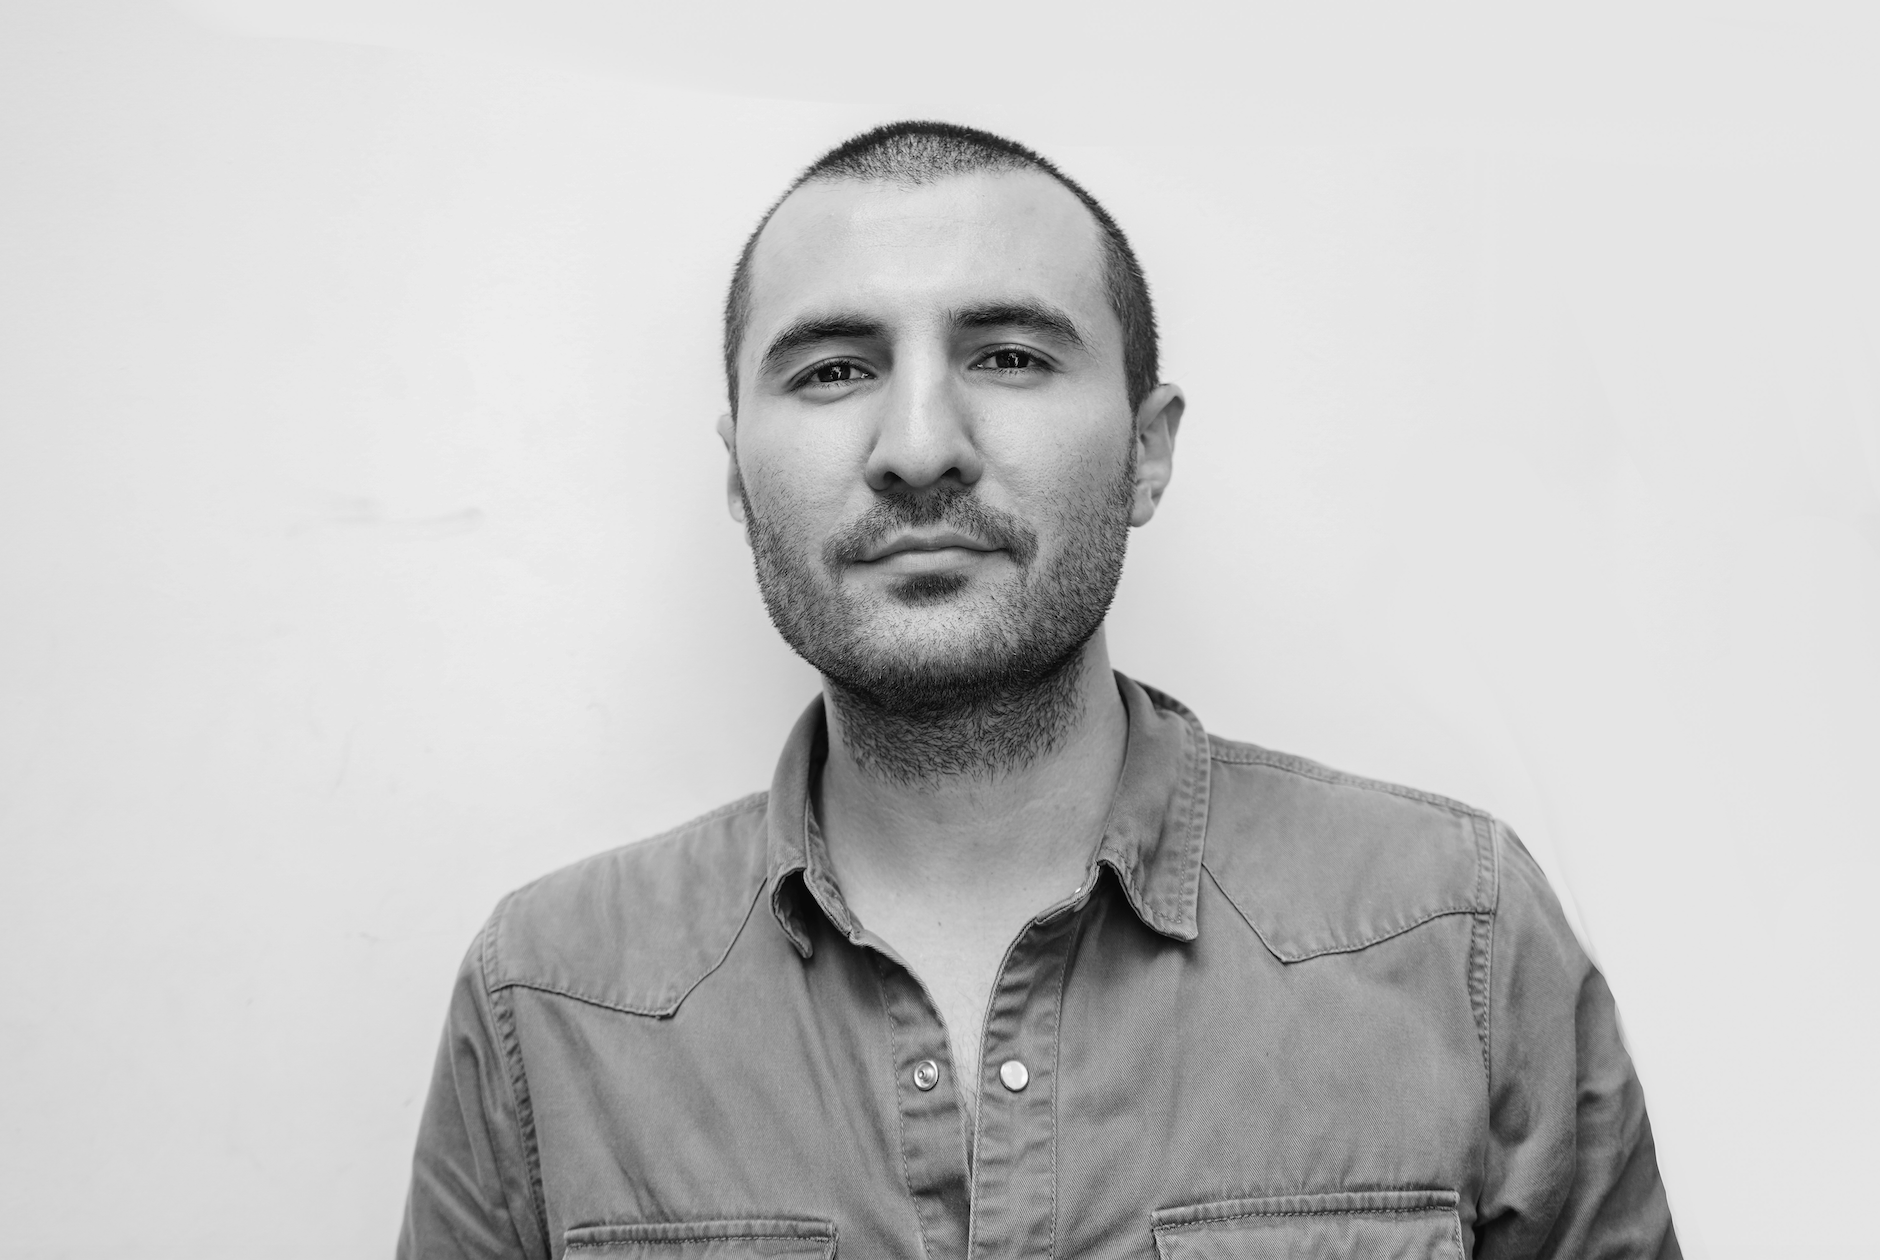 Xavier Aguilar, Director of Operations - Every smile is an Instagrammable moment